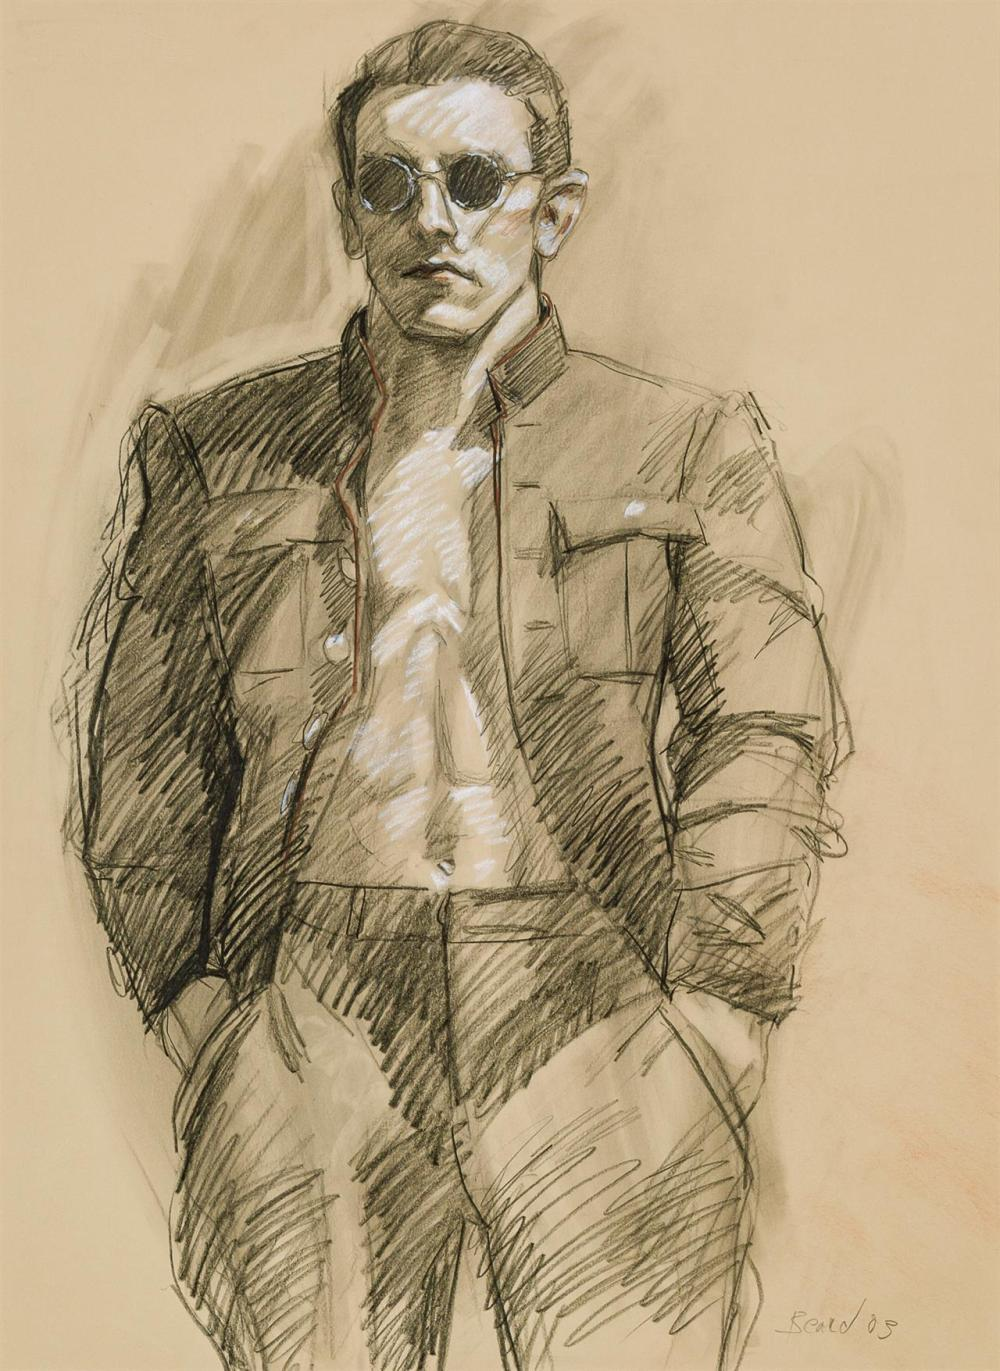 """MARK BEARD, American (b. 1956), Male Study, conte crayon and pencil on paper, signed upper left """"M Beard"""", 29 1/2 x 21 1/2 inches"""